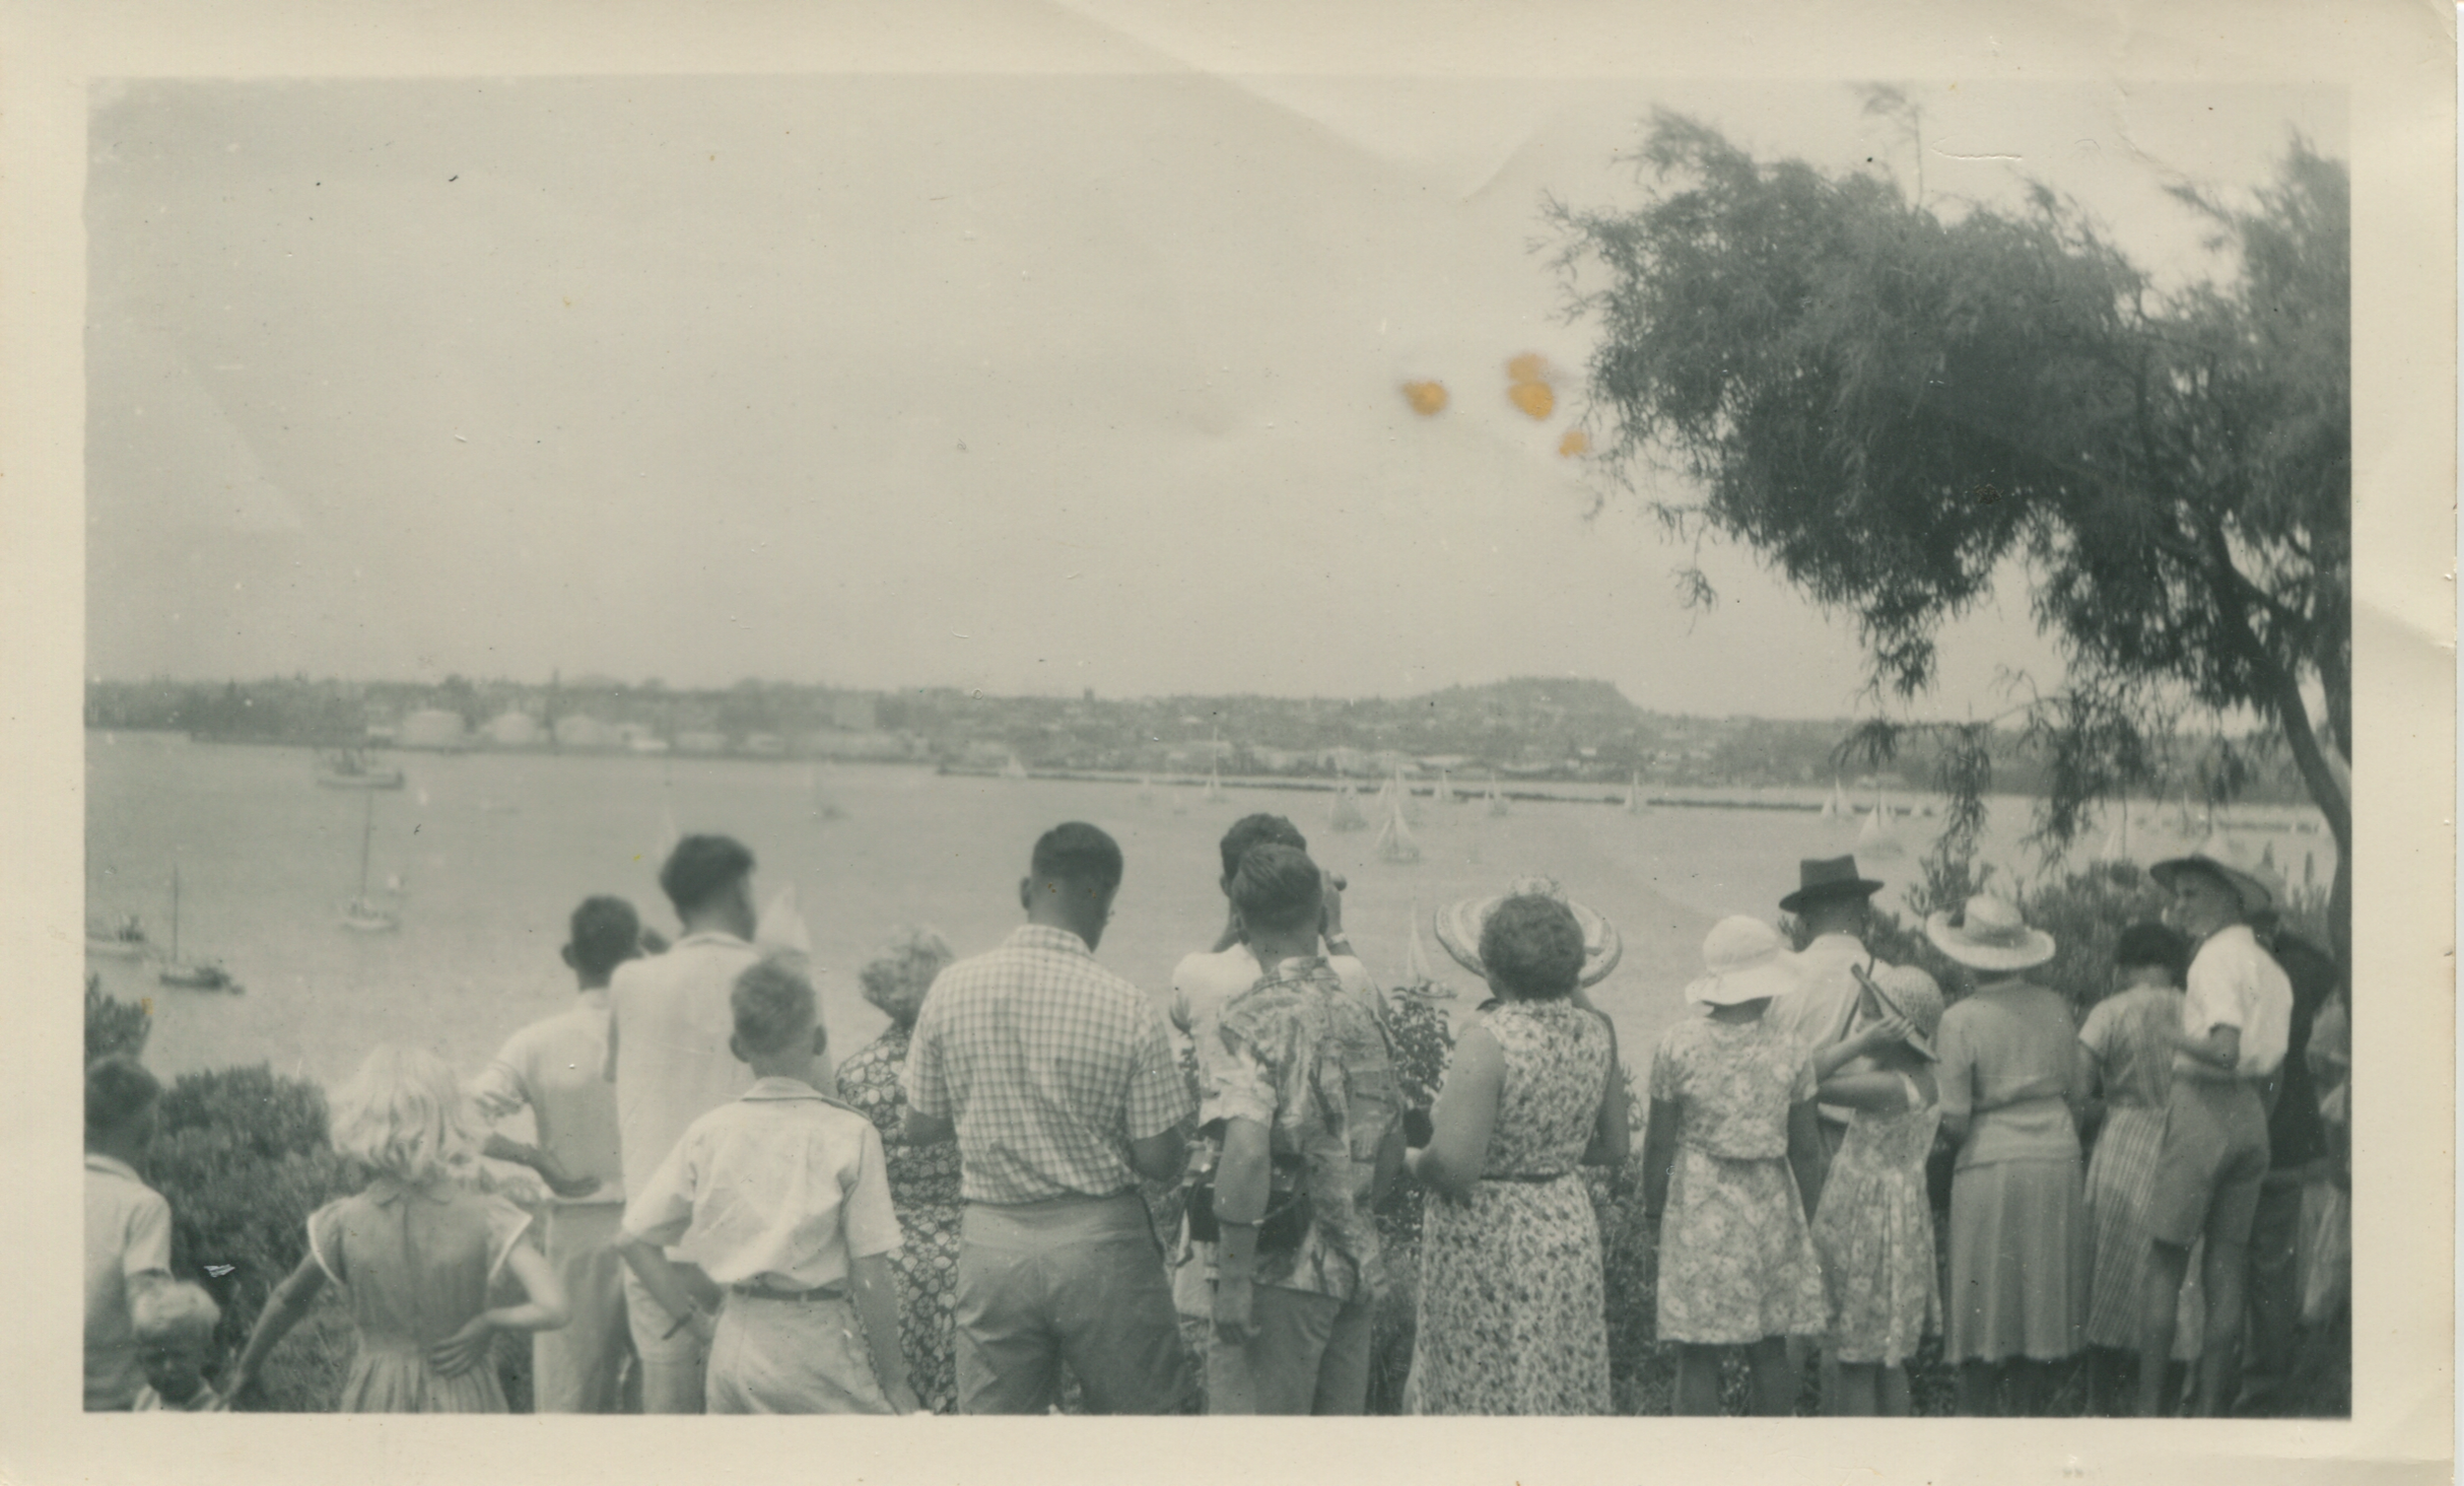 A crowd stands on Northcote Point to watch the Regatta. Image credit: Cathy Fraser. Early 1950s.